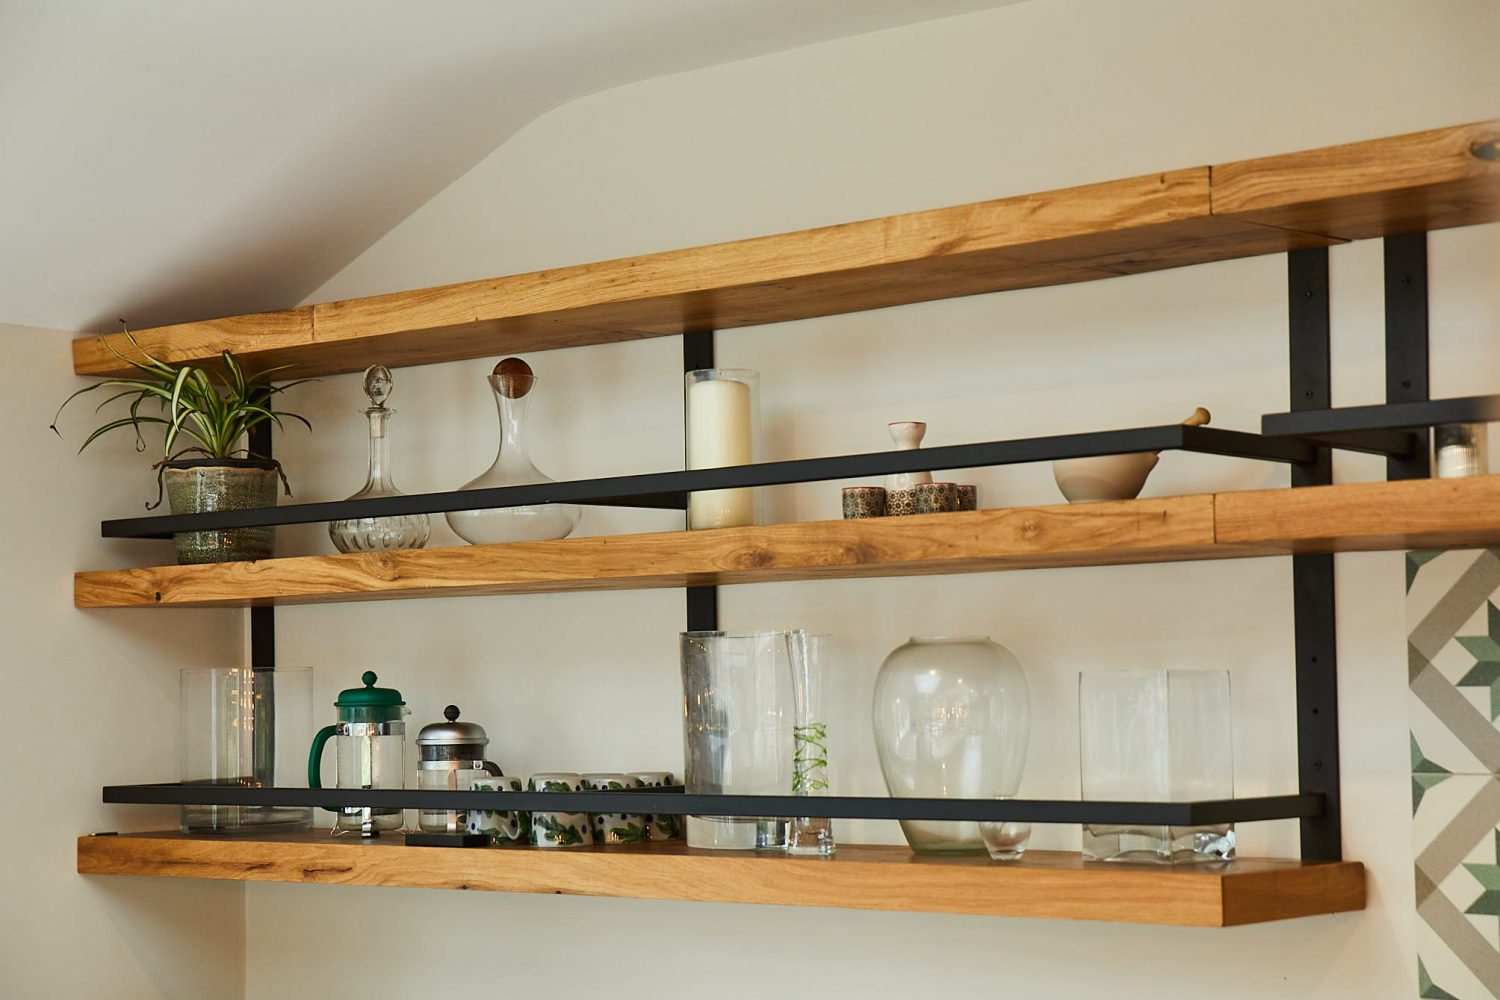 Open chunky oak shelves with glass vases and plants displayed